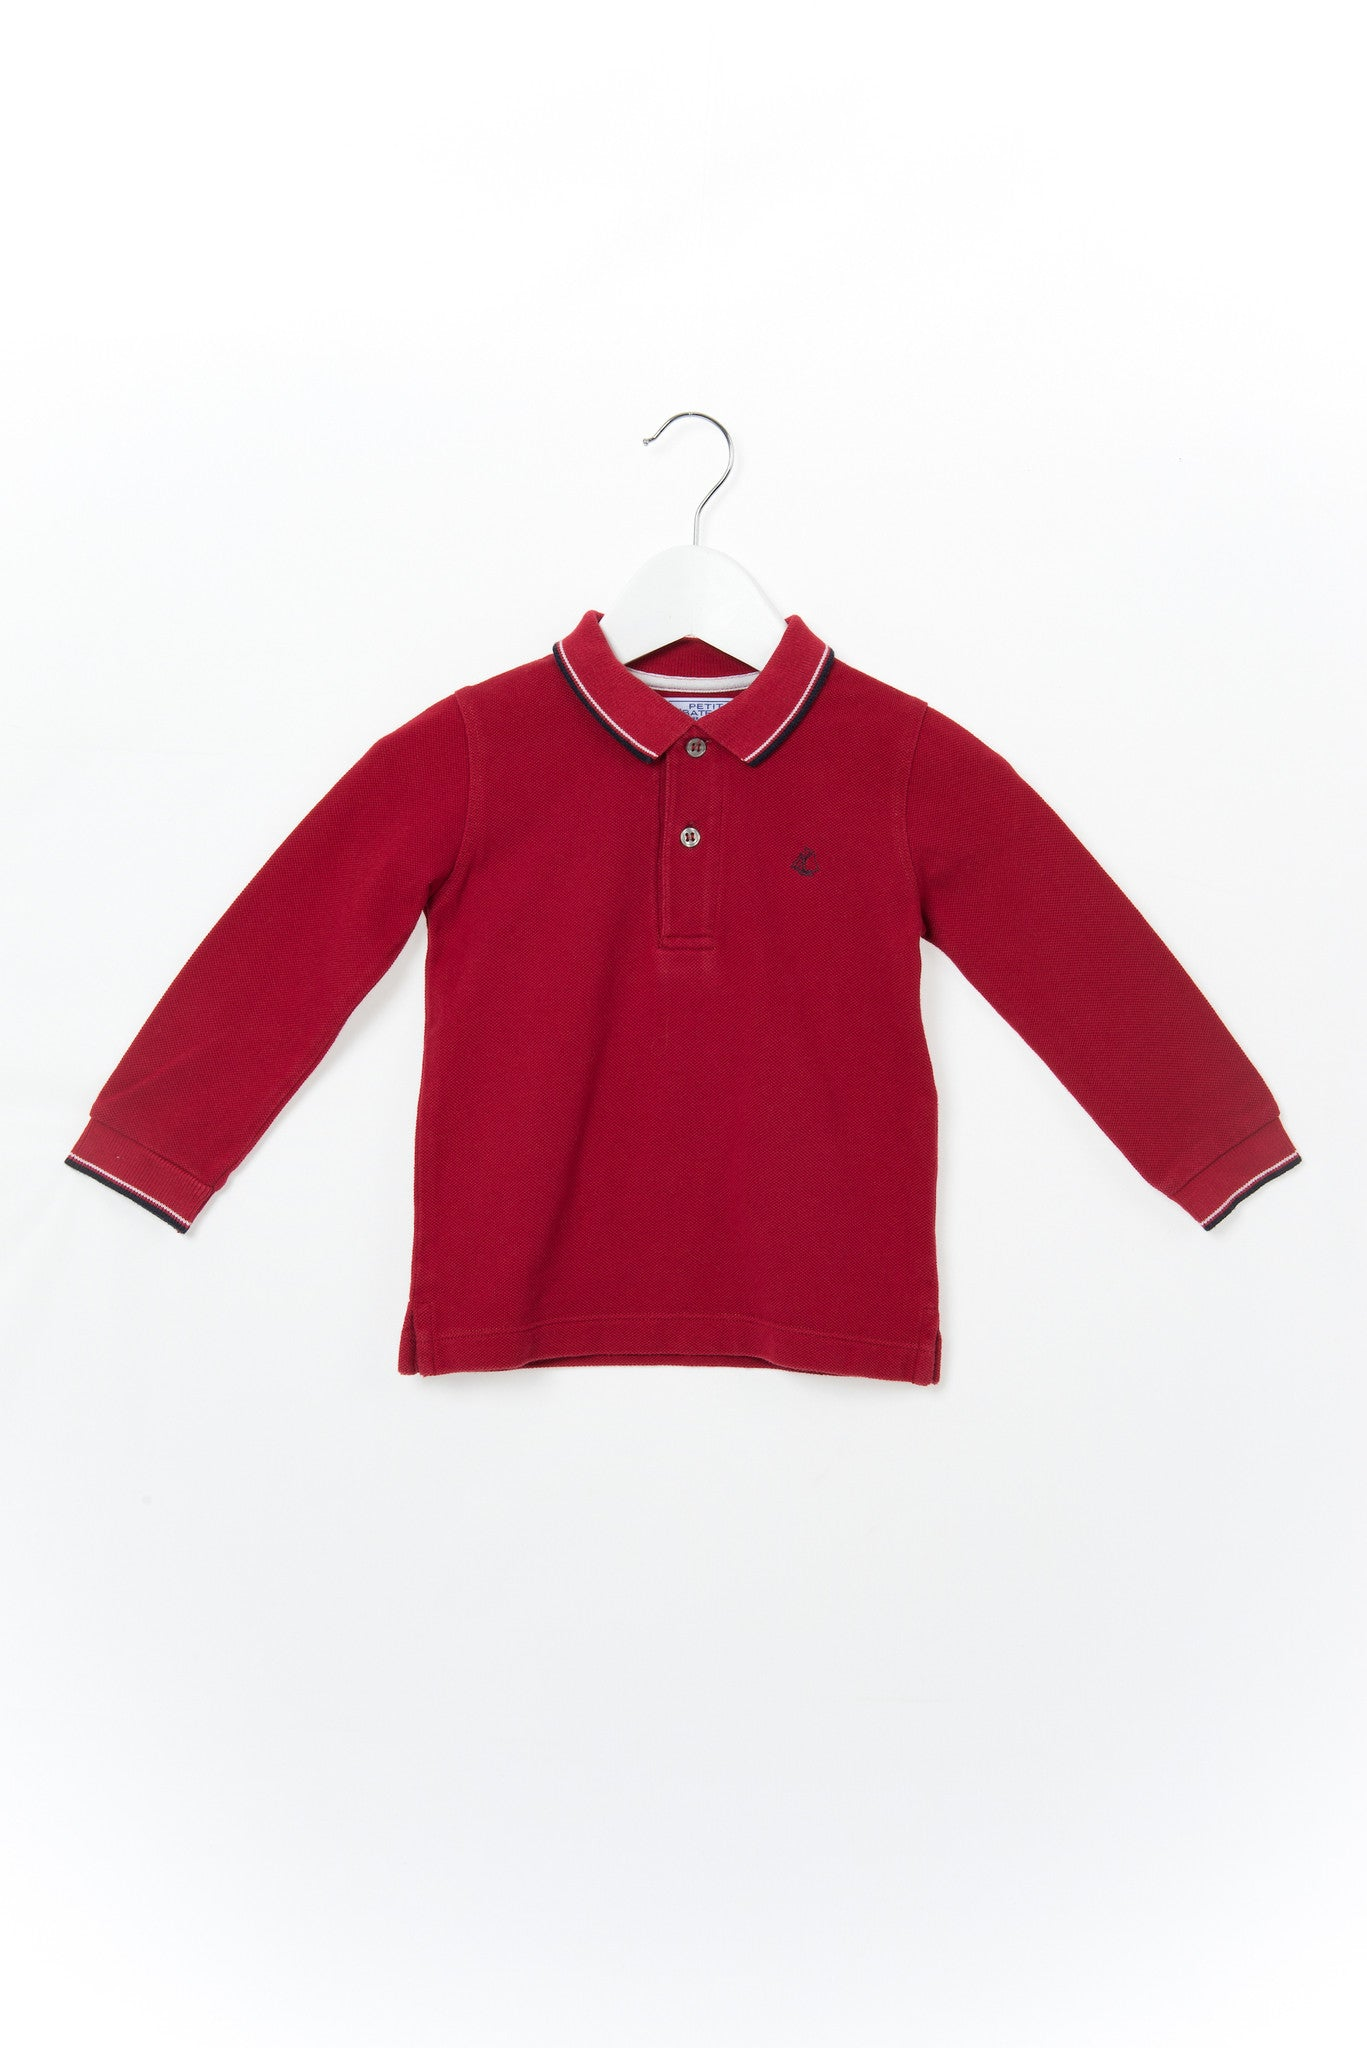 Polo 2T, Petit Bateau at Retykle - Online Baby & Kids Clothing Up to 90% Off